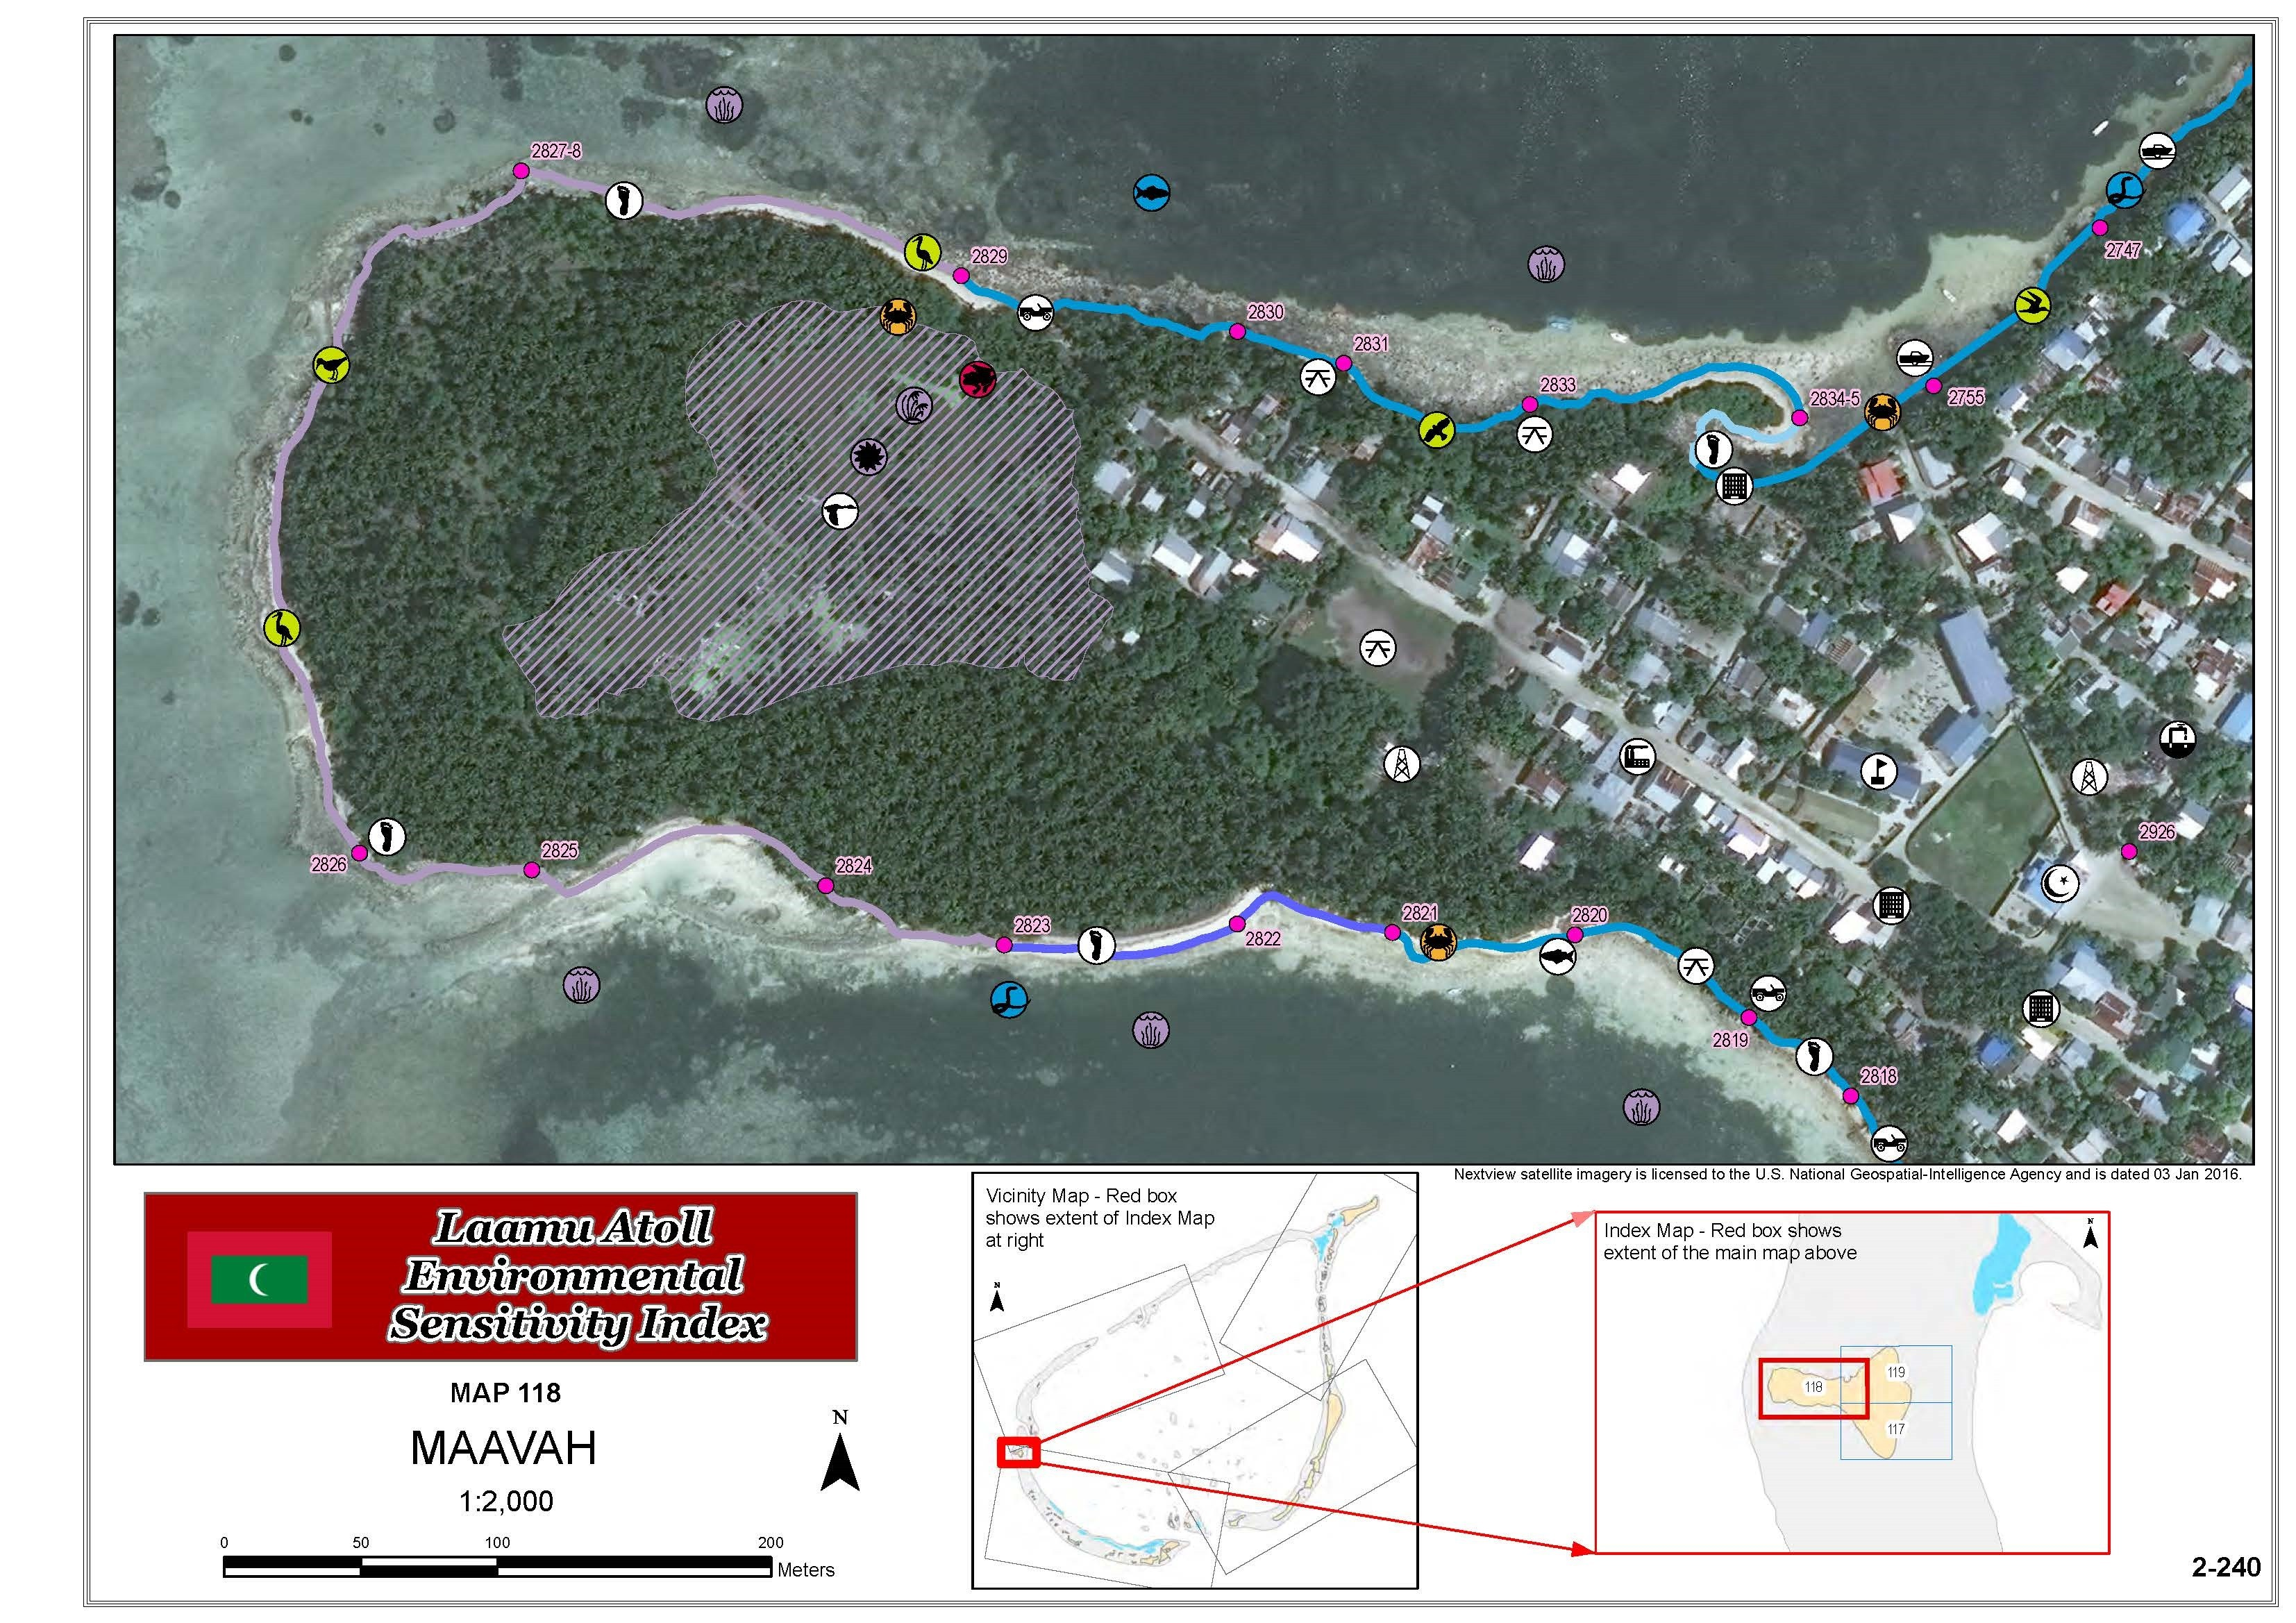 US Army Corps of Engineers Republic of Maldives collaborate to